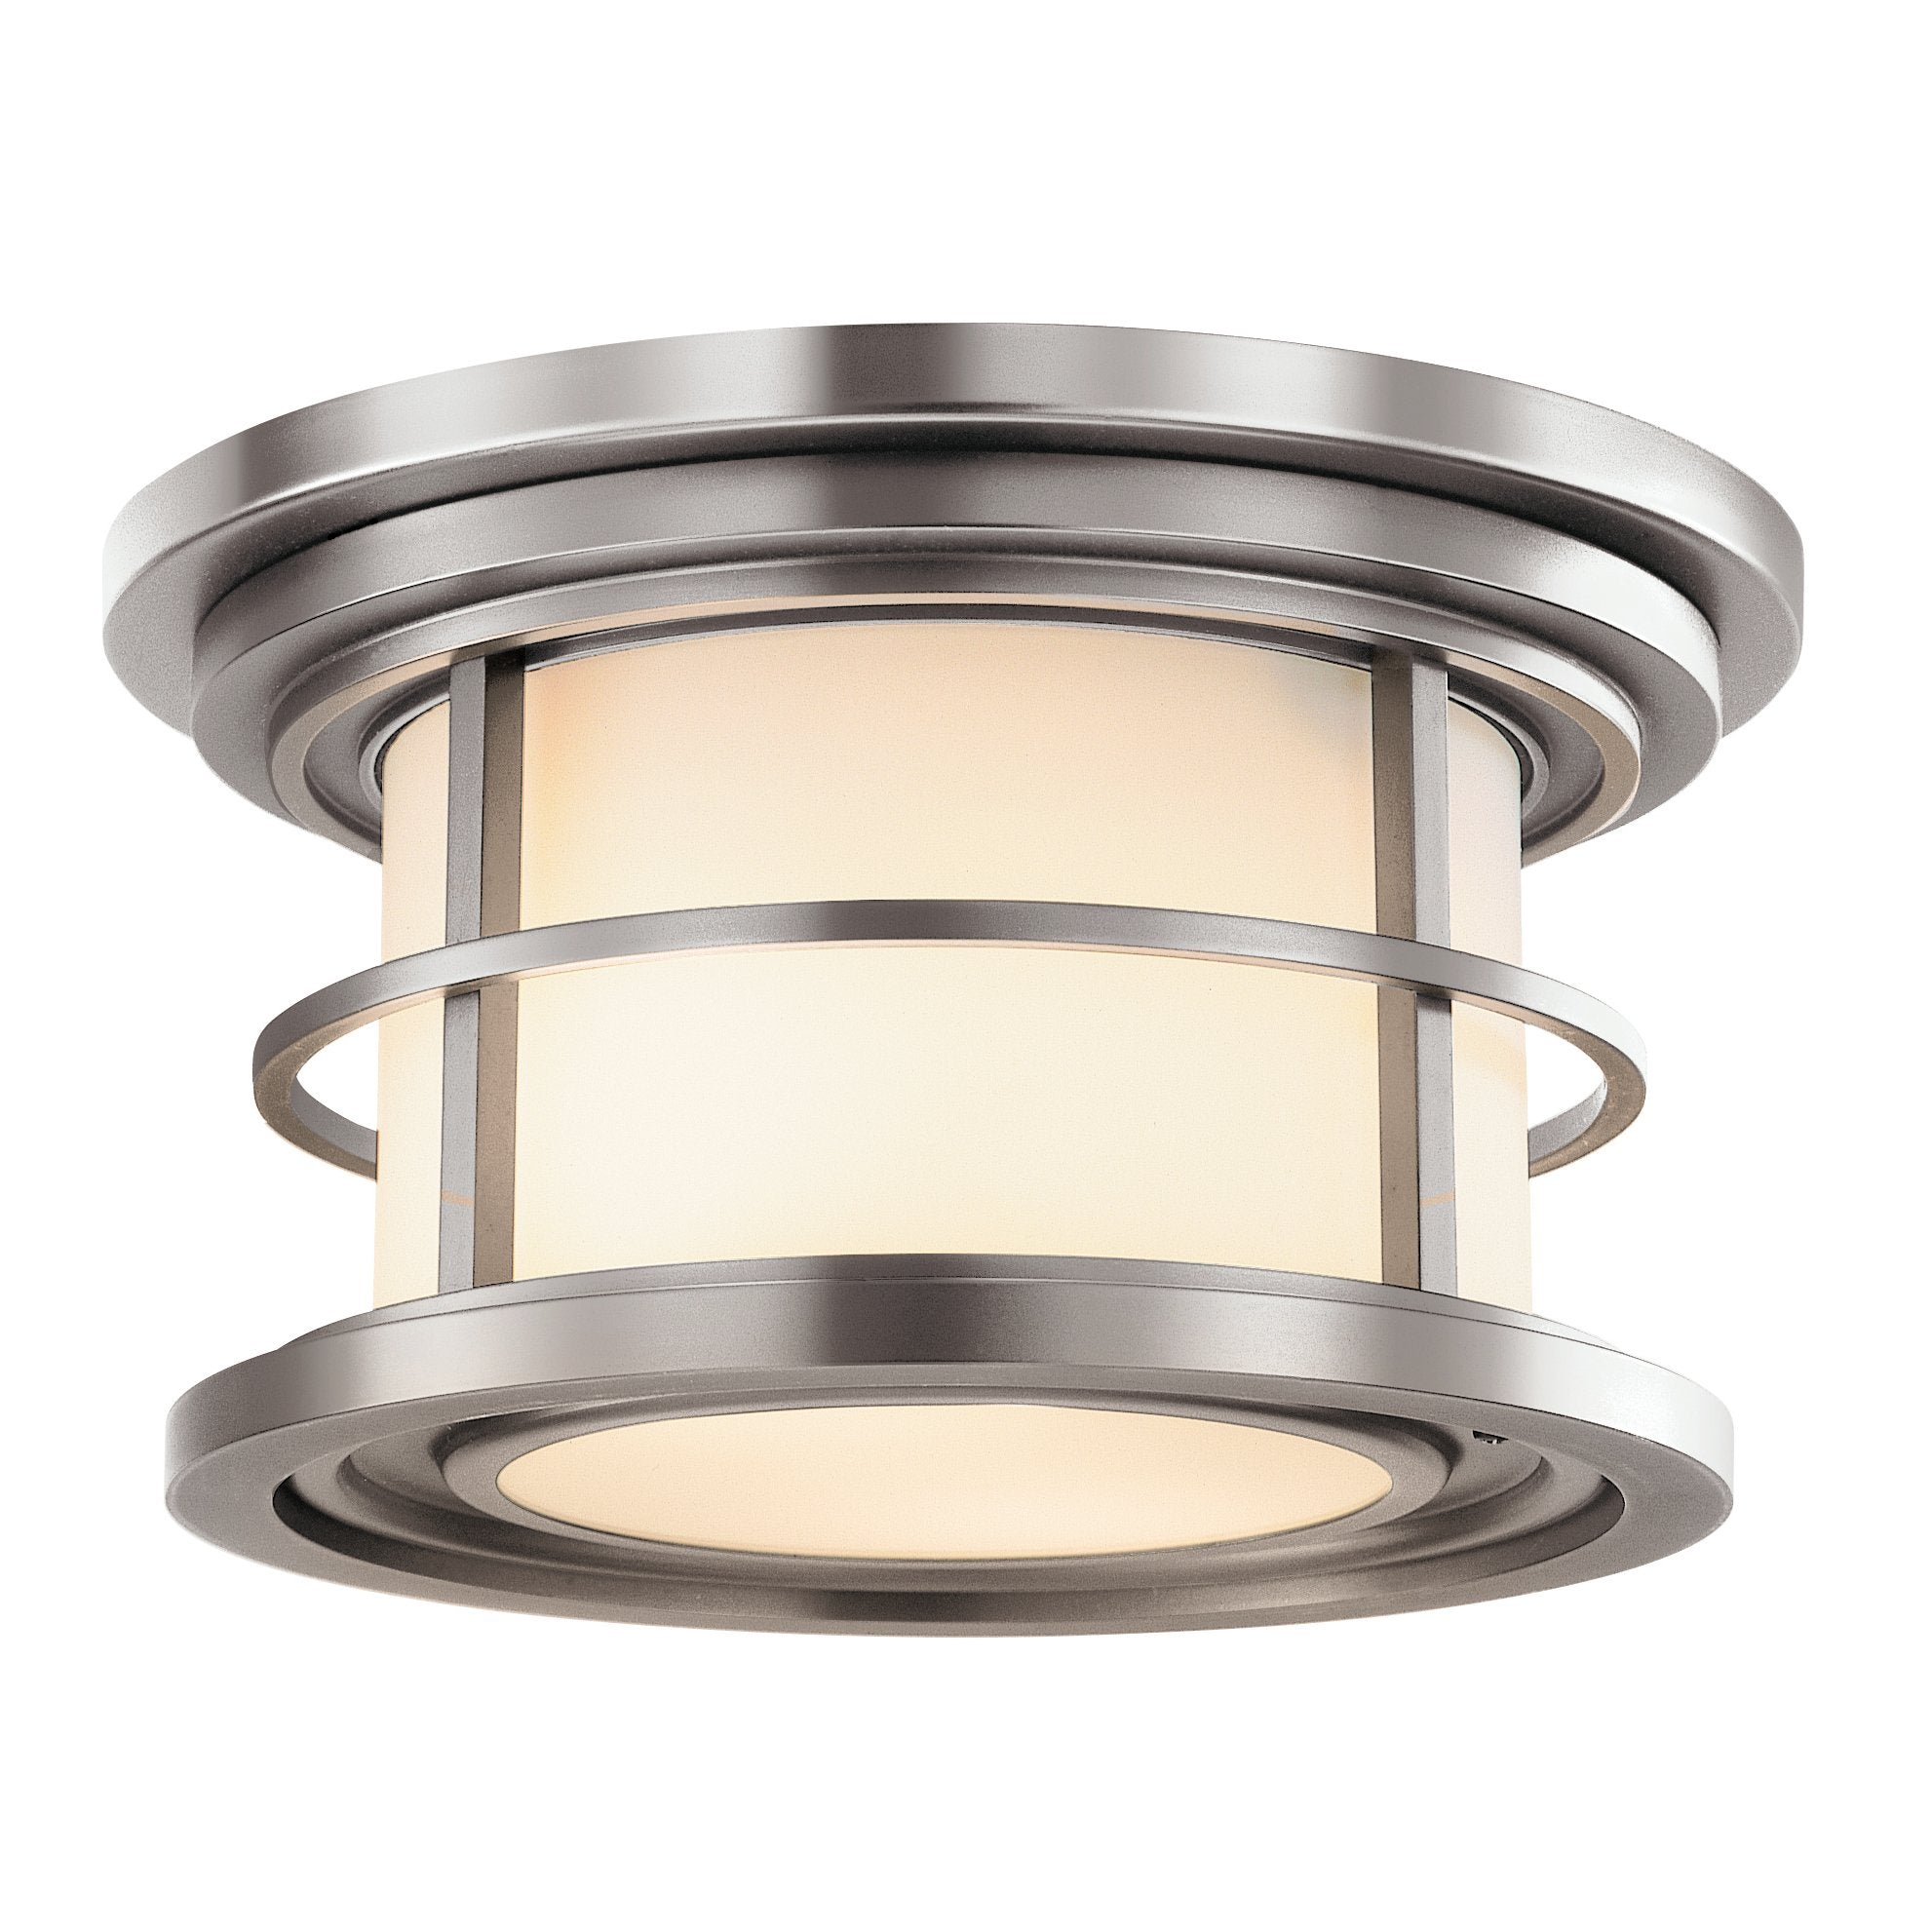 Brushed Steel Outdoor Flush Mount